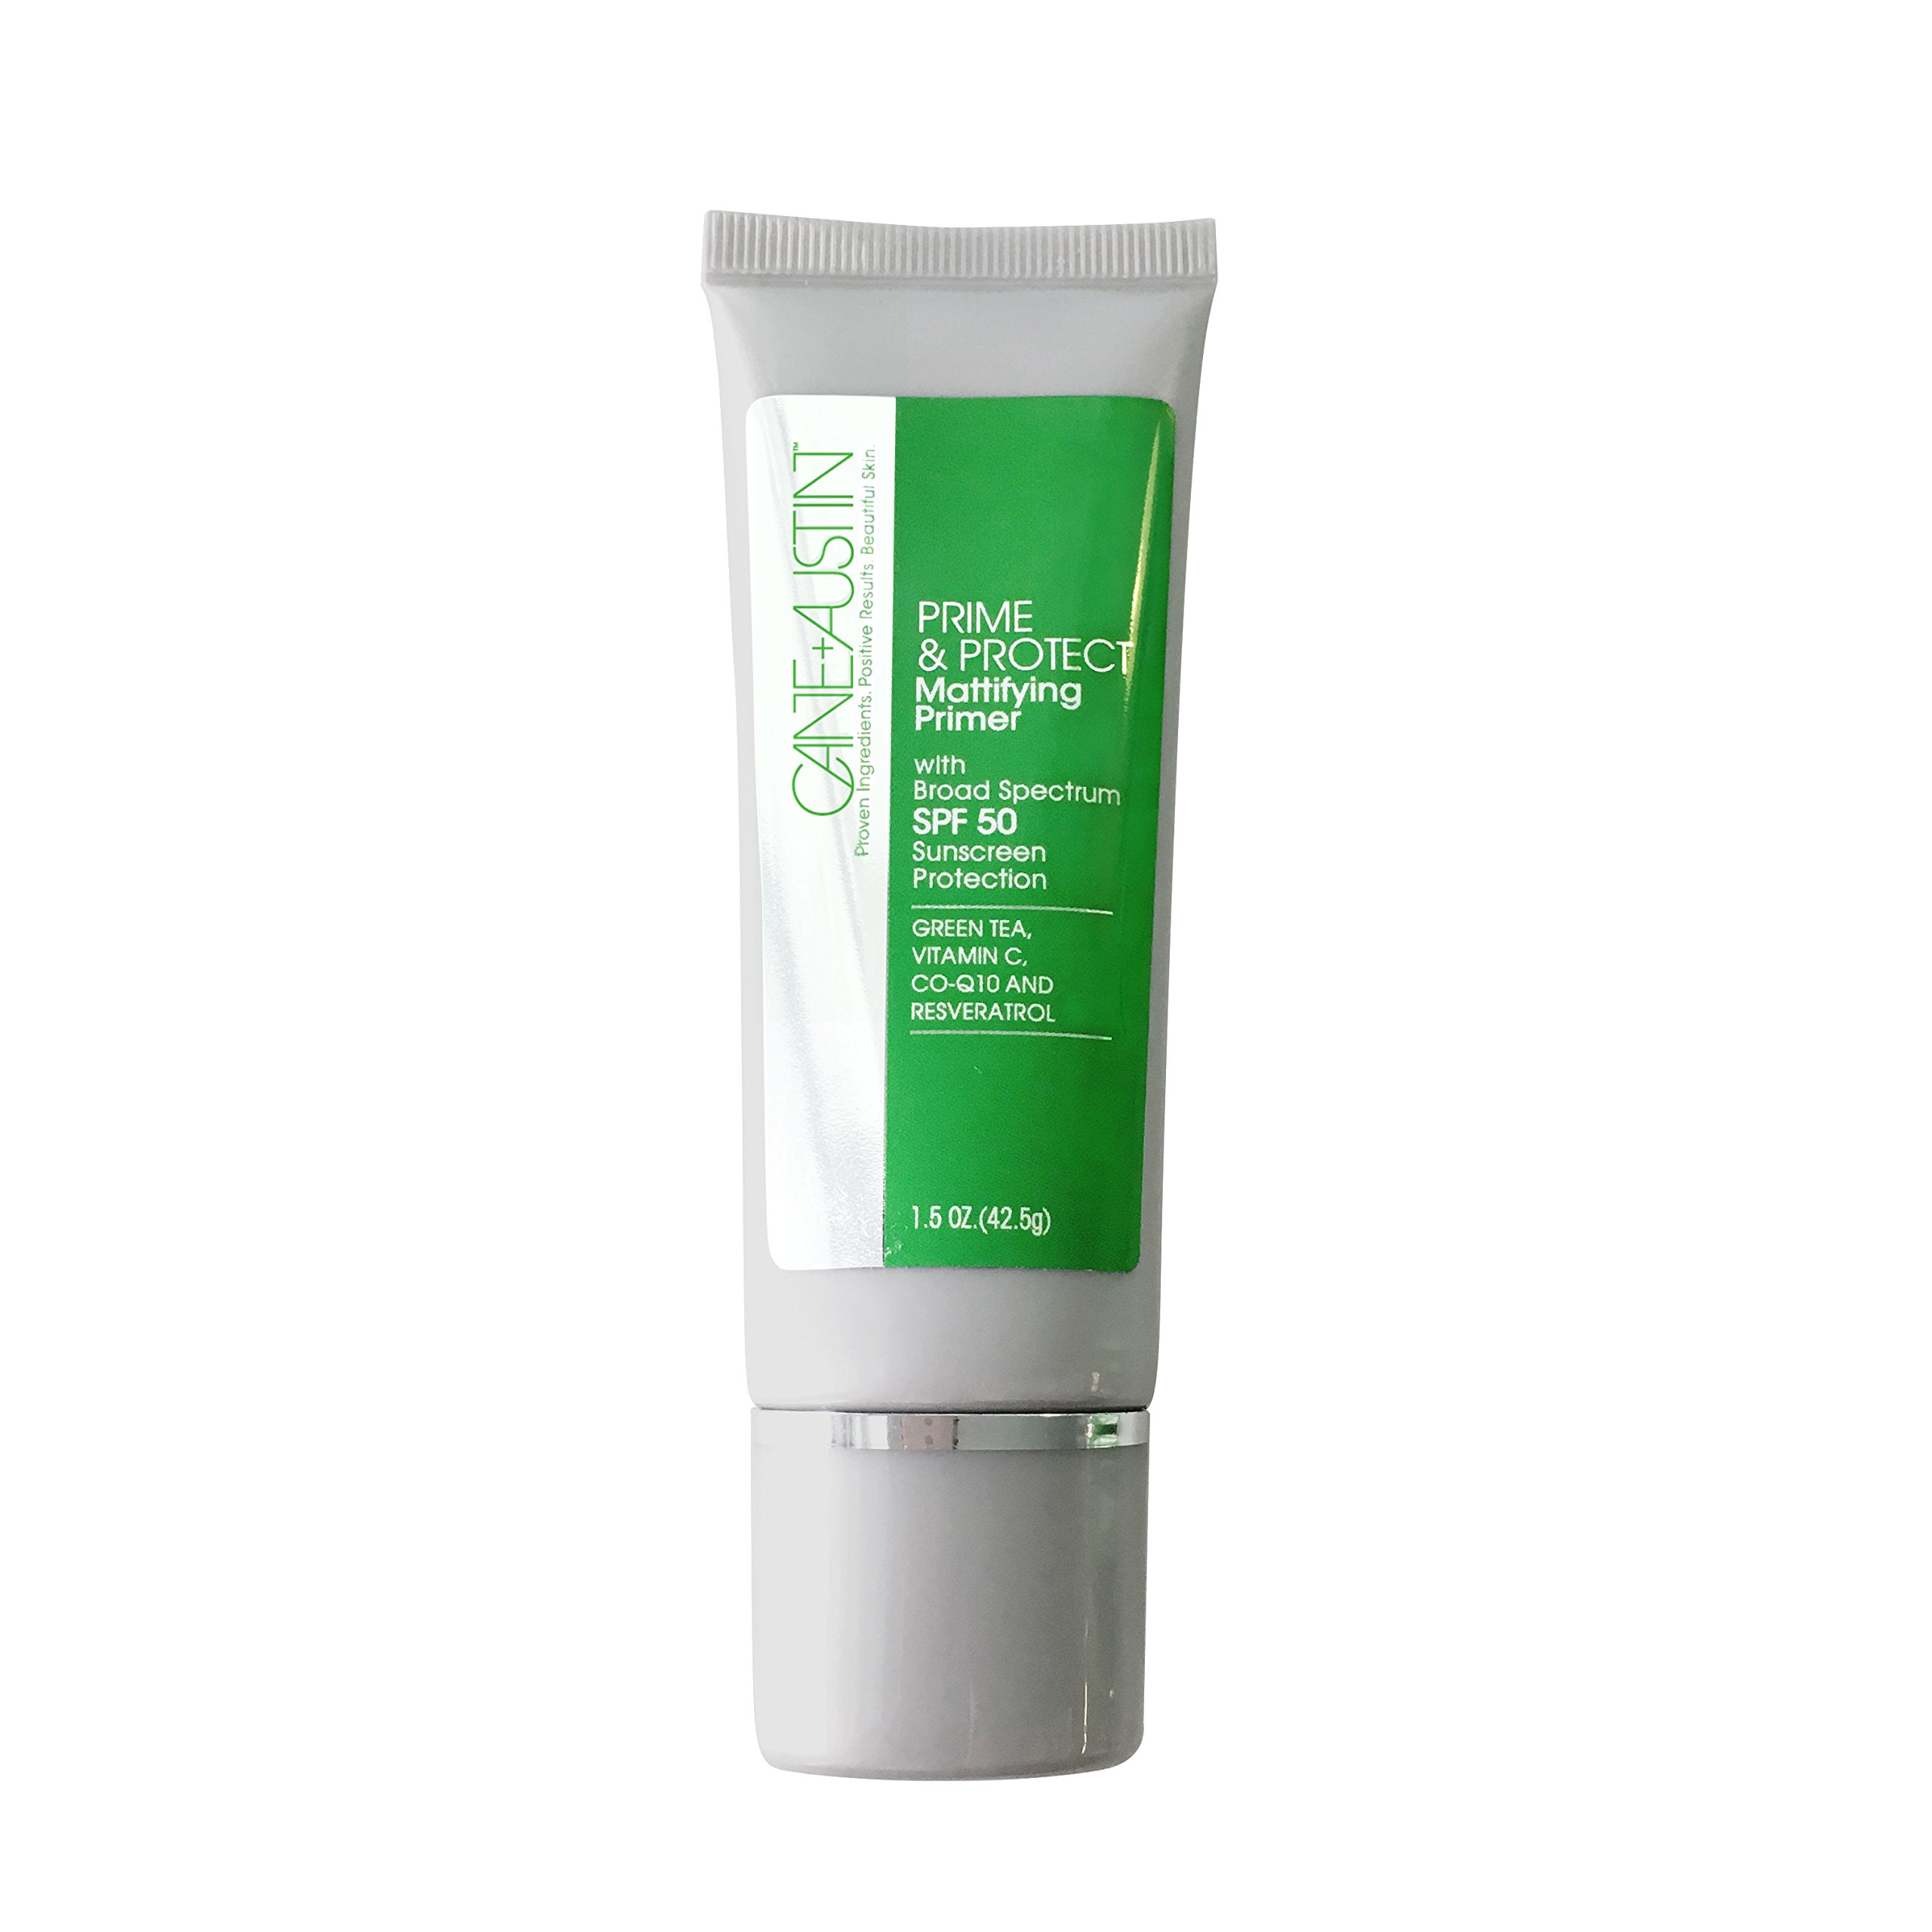 CANE + AUSTIN Prime and Protect Mattifying Primer, 1.5 Oz by CANE + AUSTIN (Image #1)